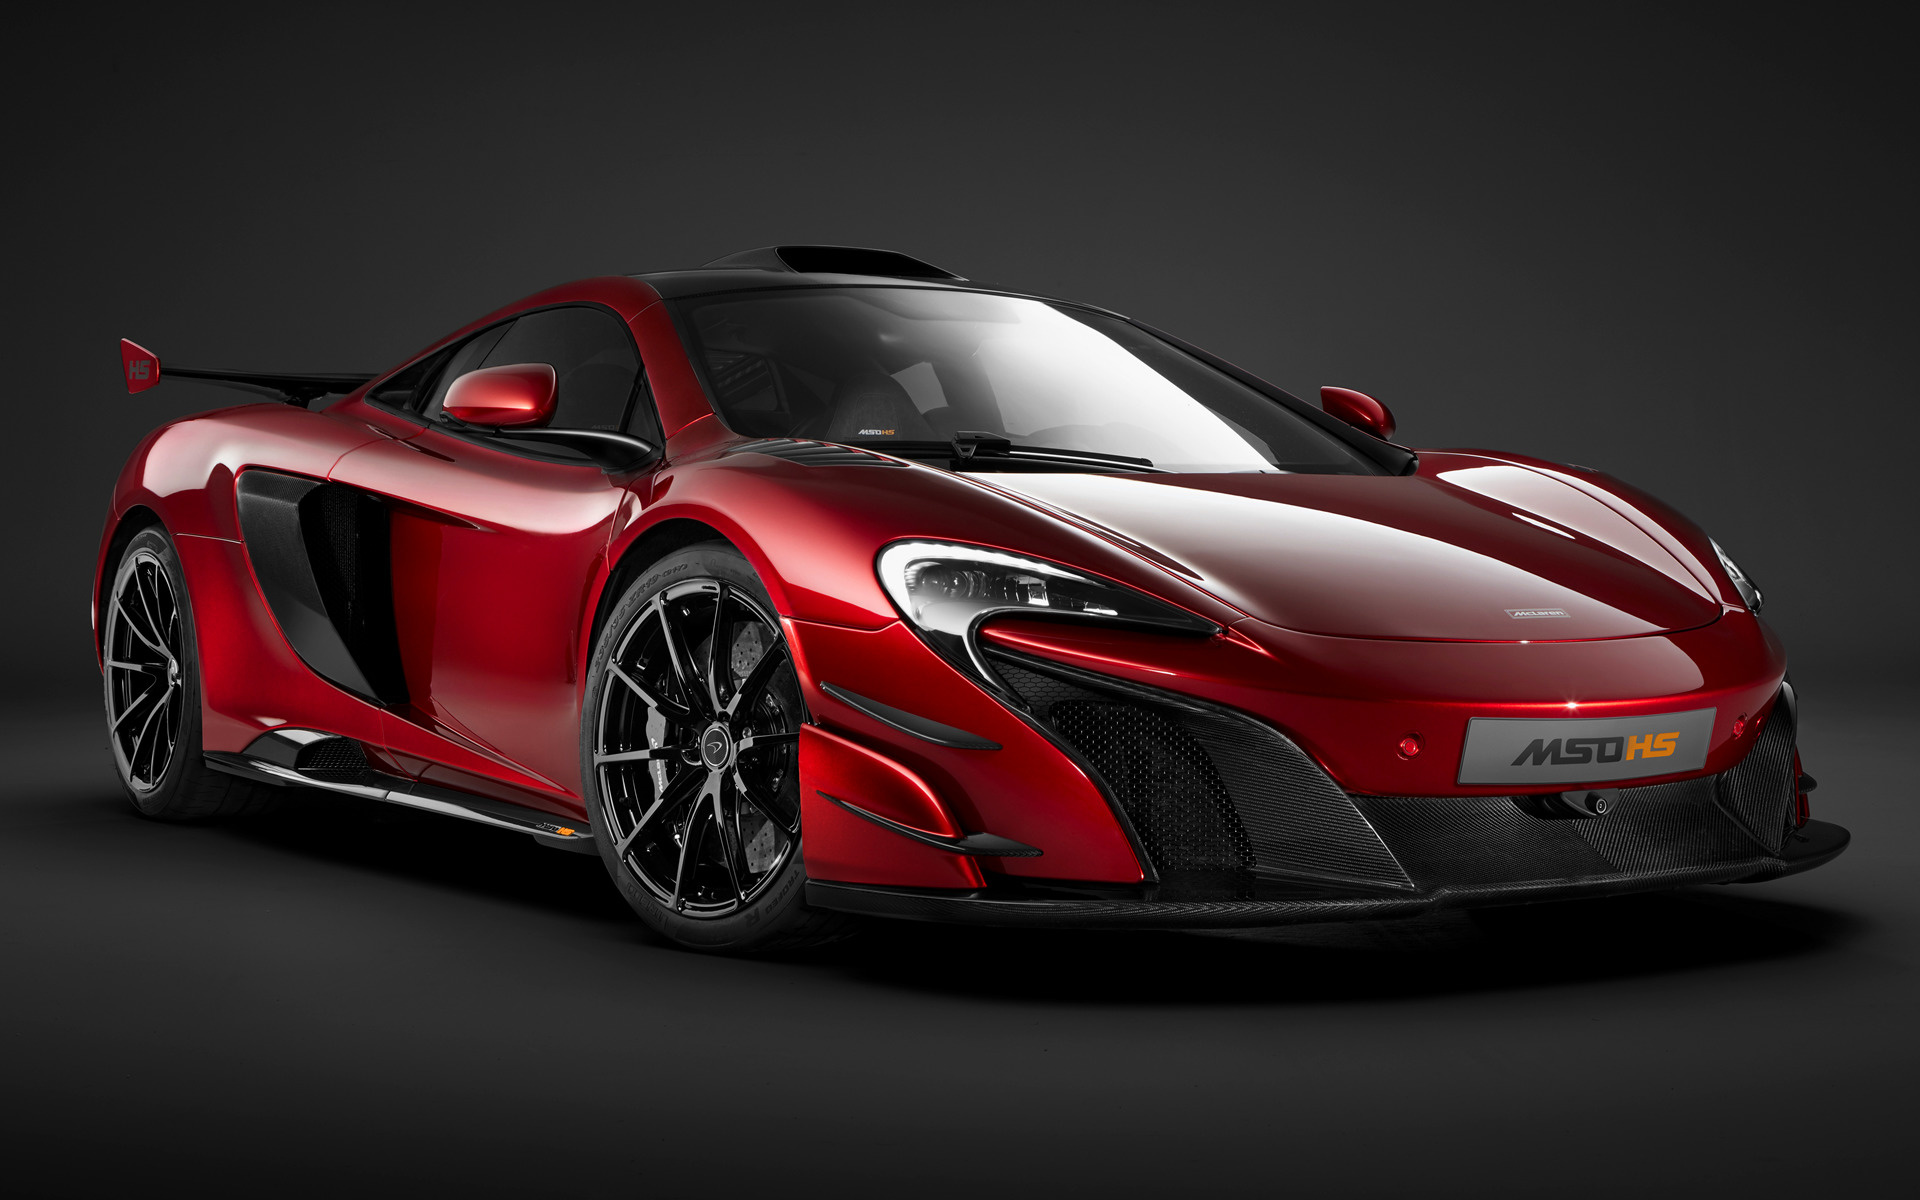 2016 Mclaren Mso Hs Wallpapers And Hd Images Car Pixel